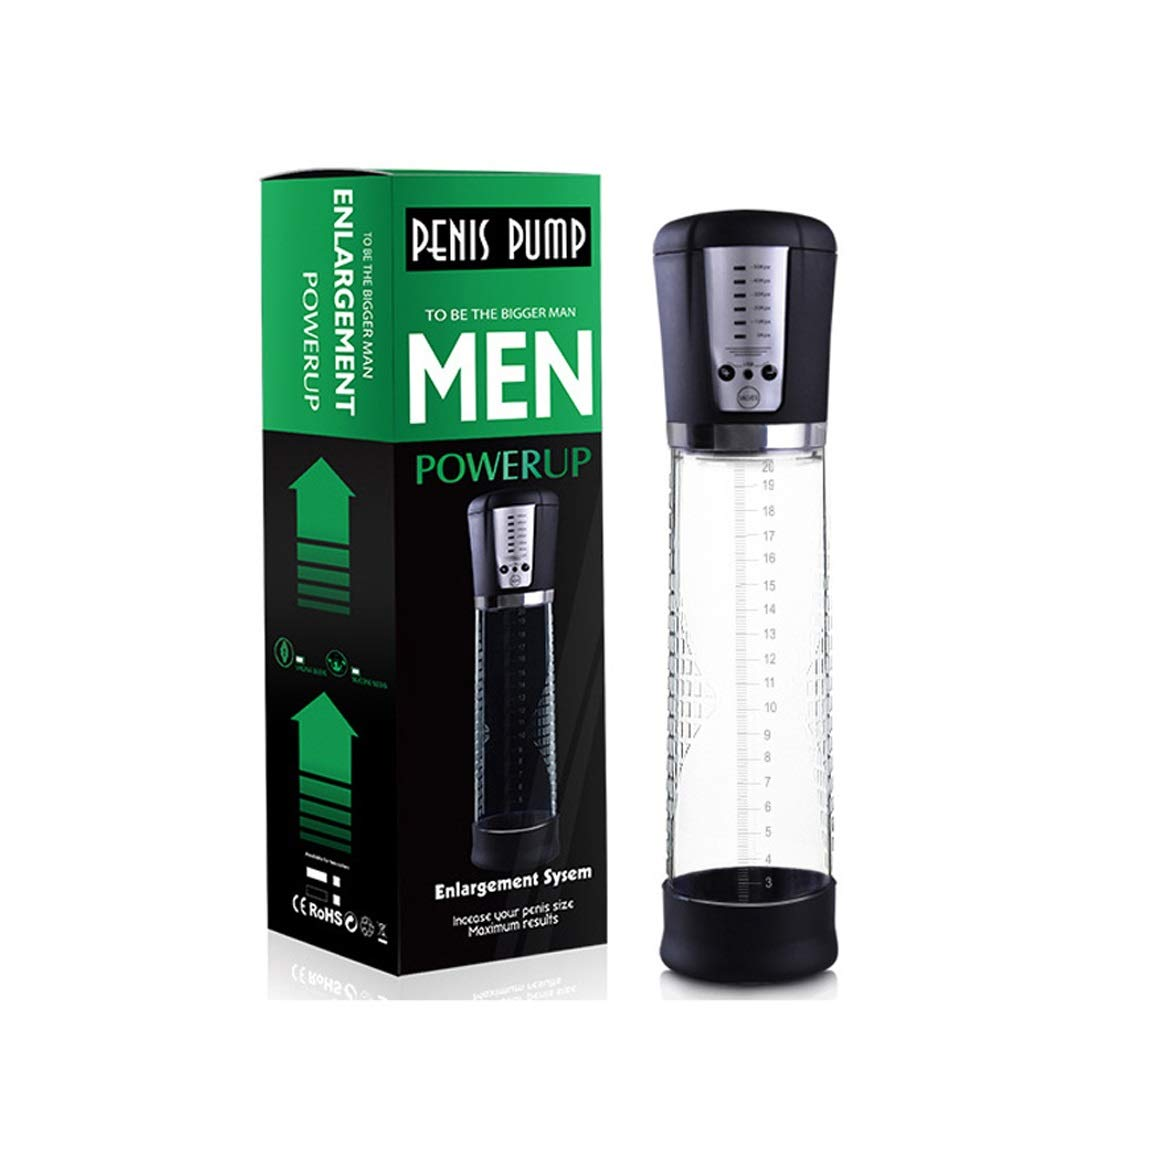 Automatic Penǐs Vacuum Pump with 4 Suction Intensities for Stronger Bigger Erections, Dhlover Electronic Male Enhancement Penǐs Pump with Clear Cylinder for Easy Viewing